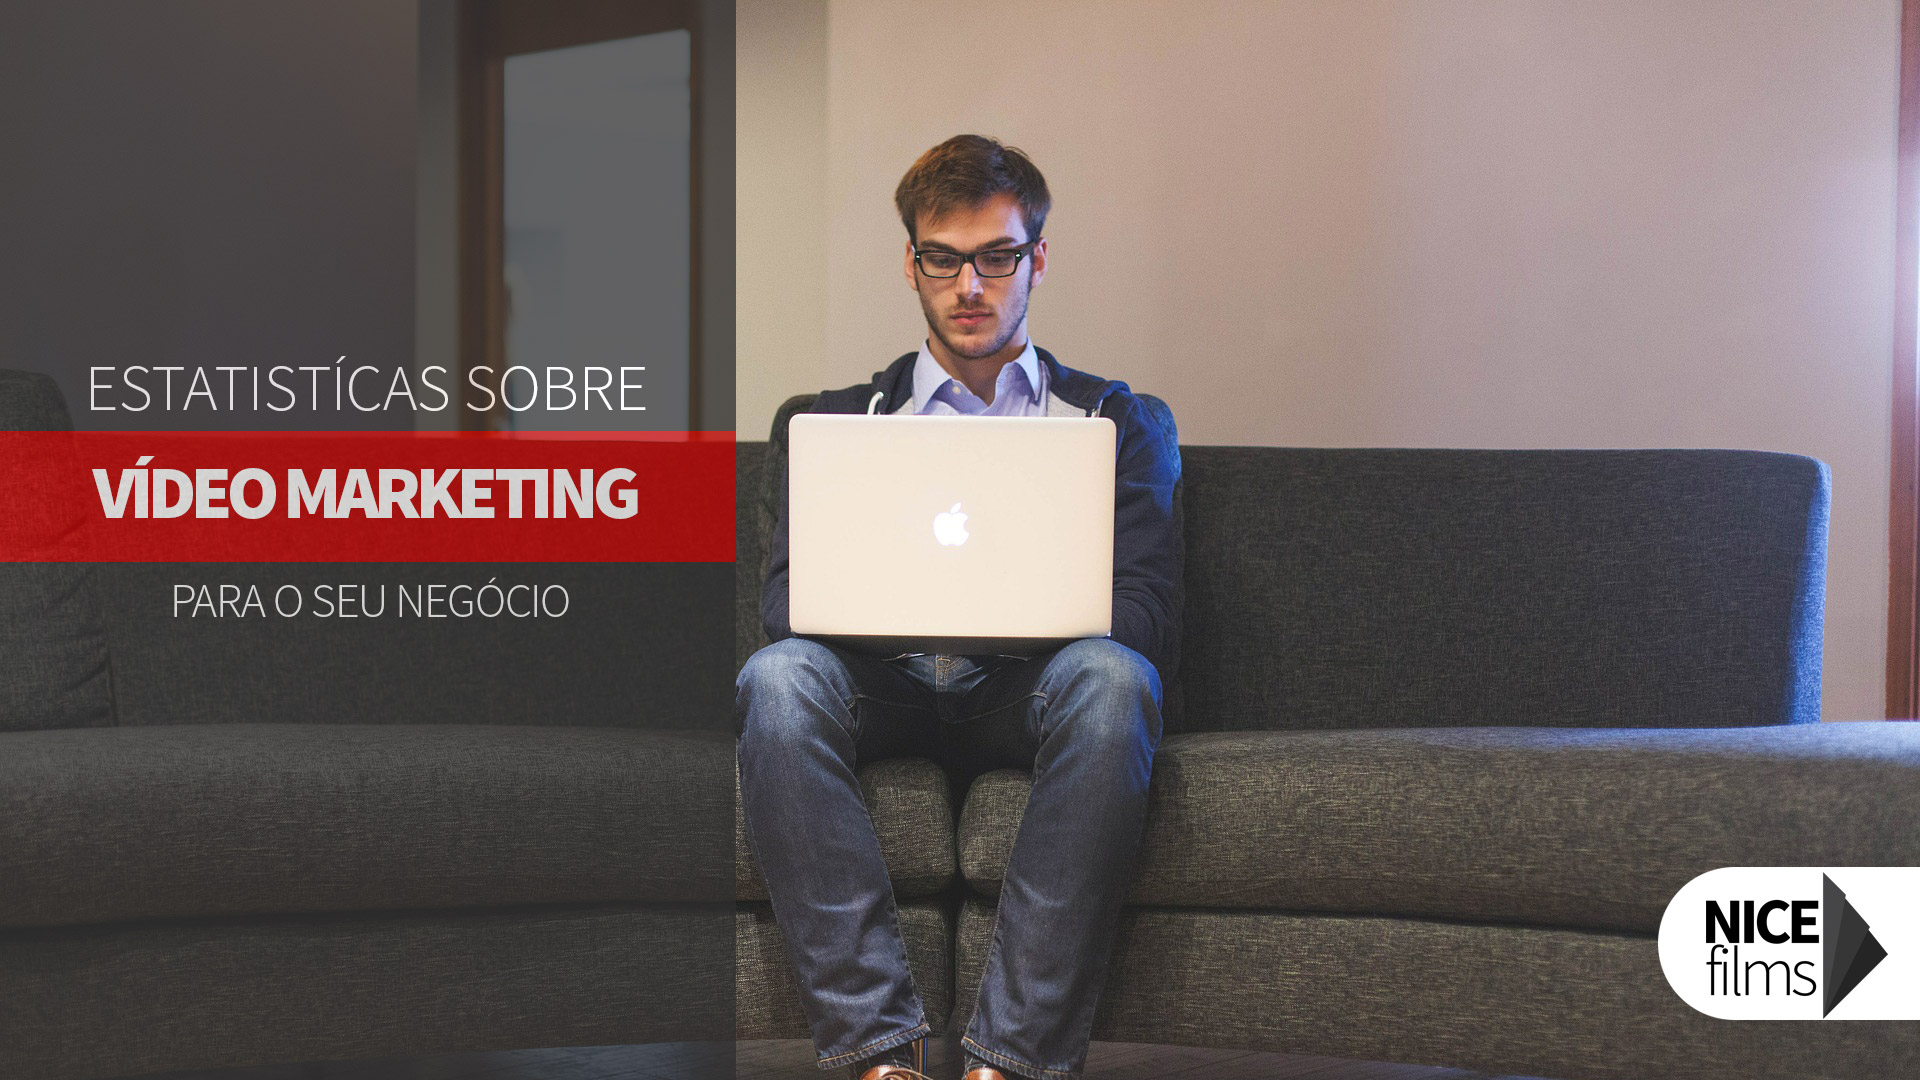 Principais estatísticas sobre Vídeo Marketing